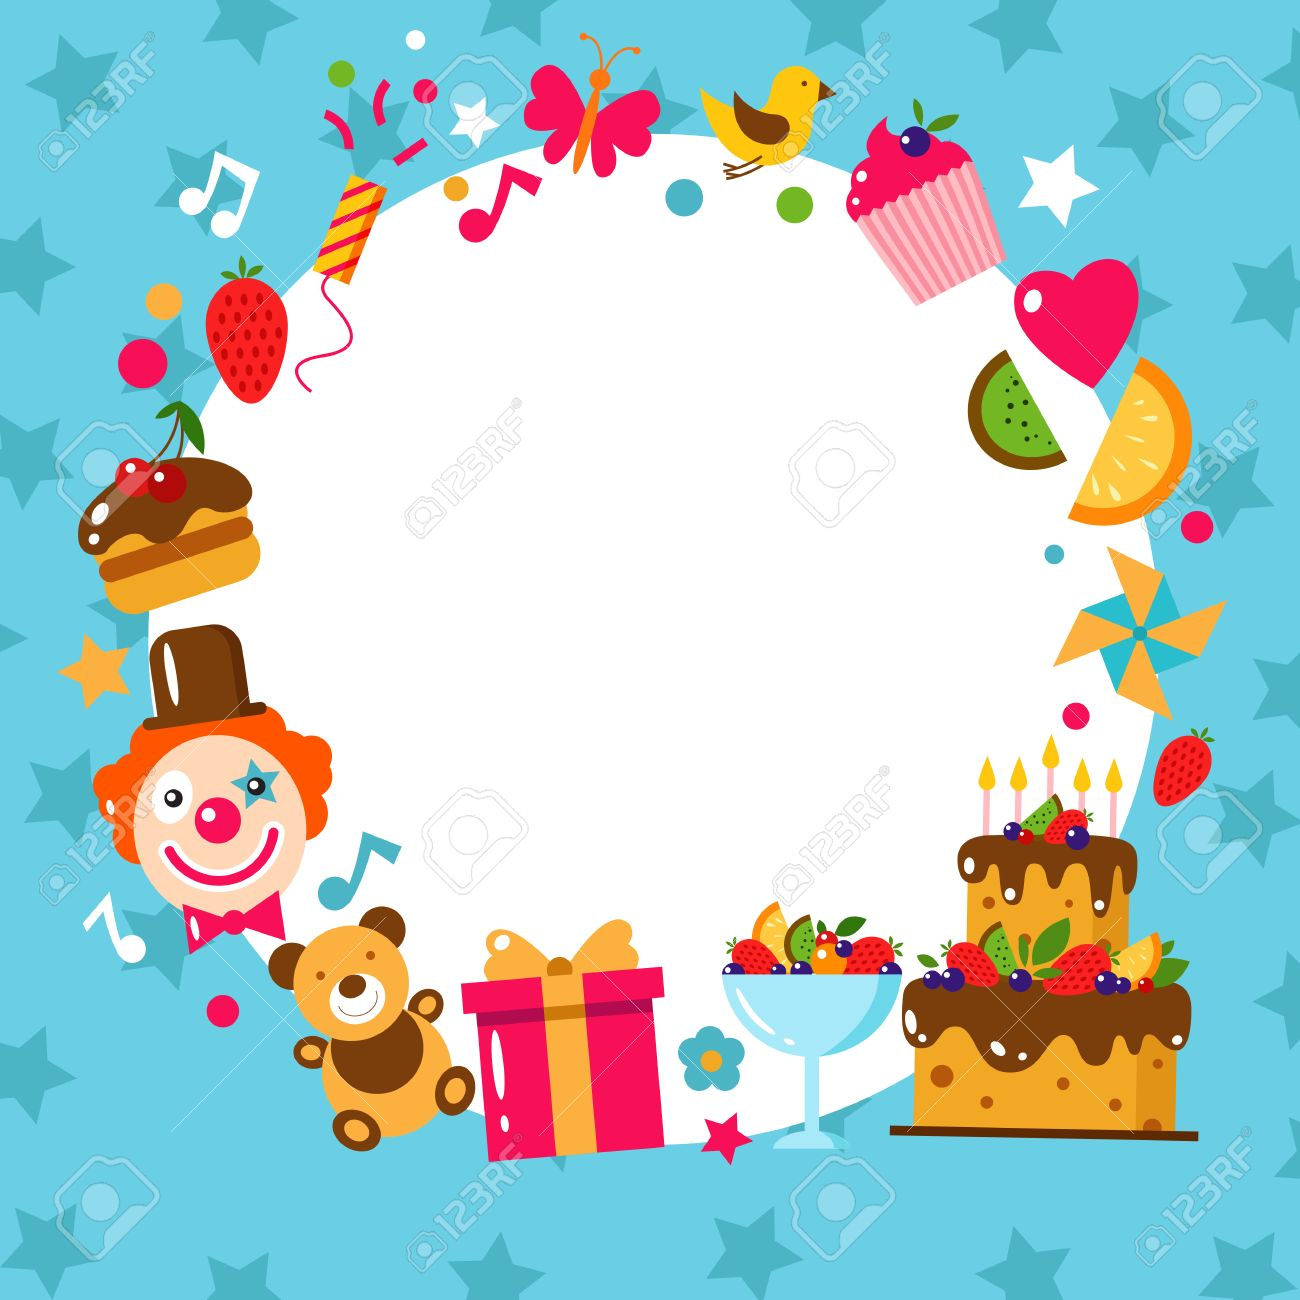 Happy birthday card flat vector illustration kids party and happy birthday card flat vector illustration kids party and celebration design elements cake bookmarktalkfo